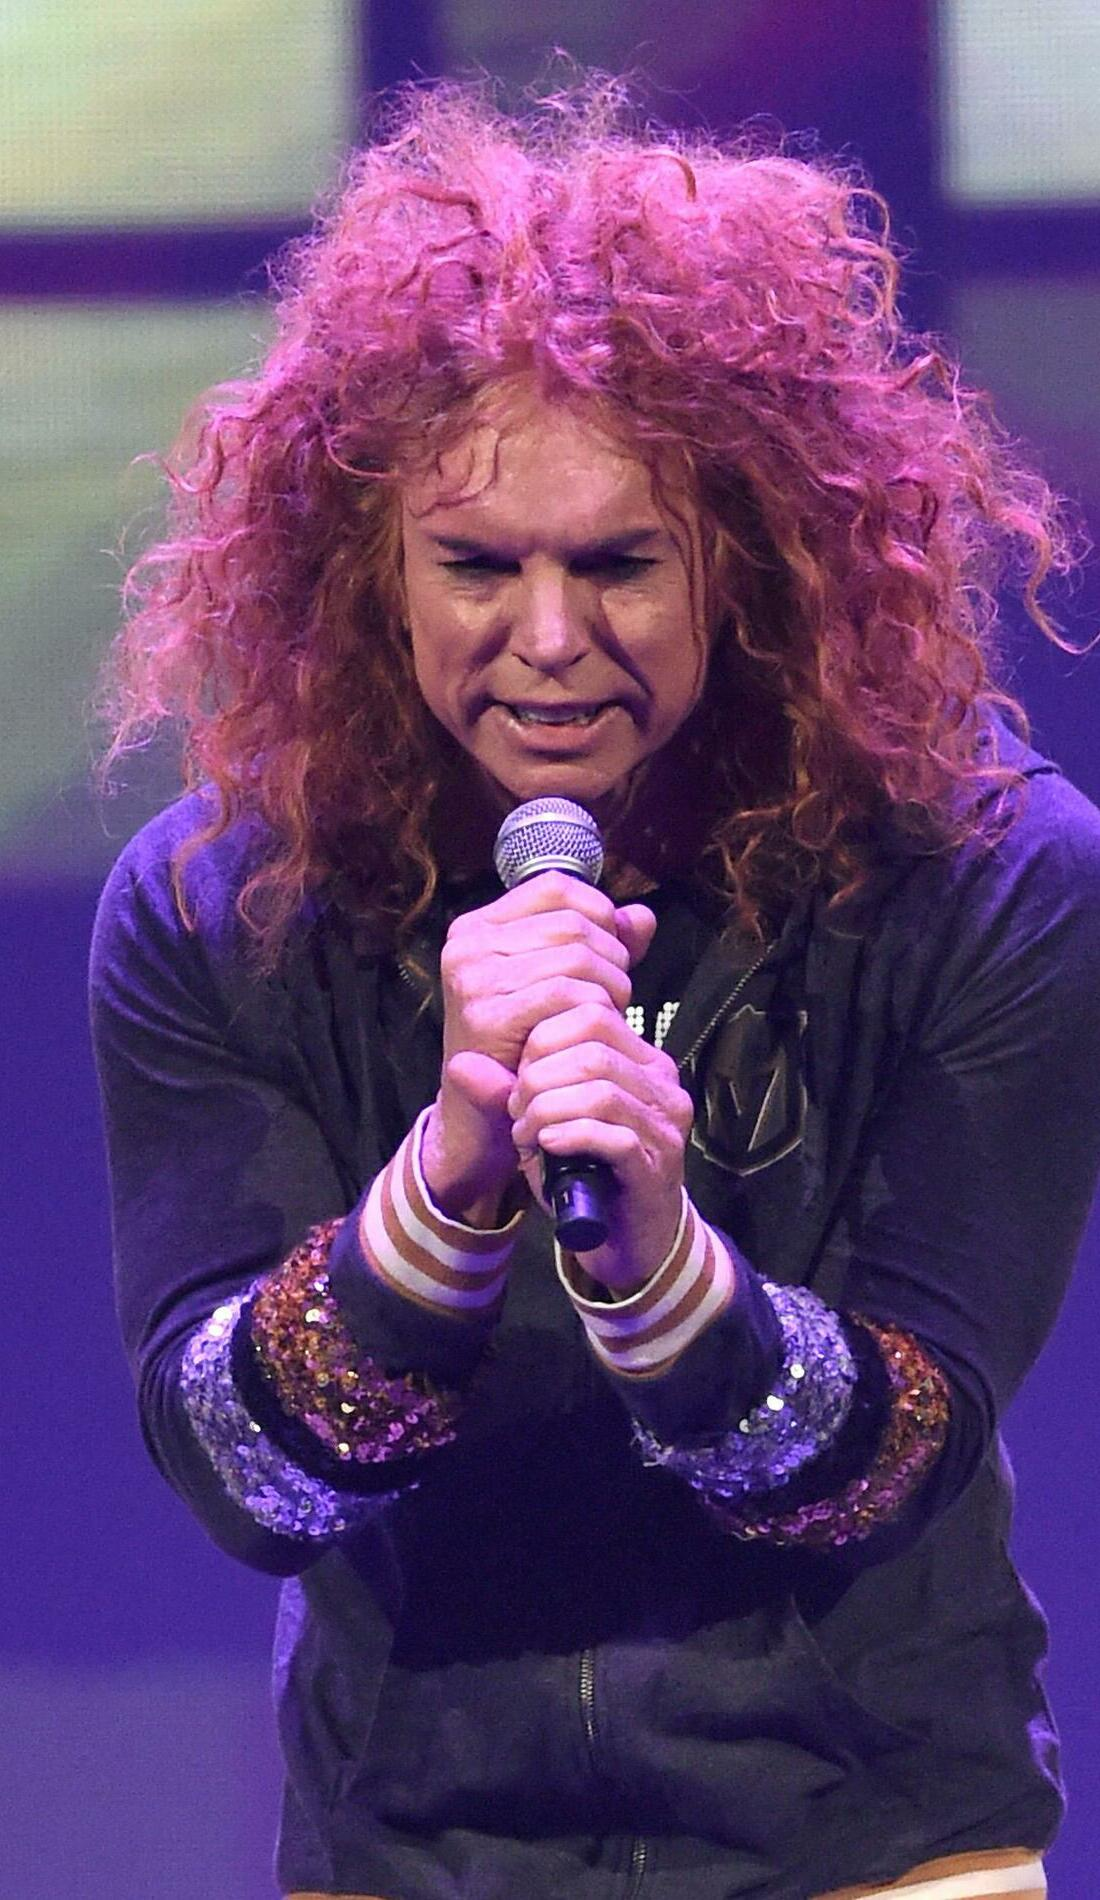 A Carrot Top live event